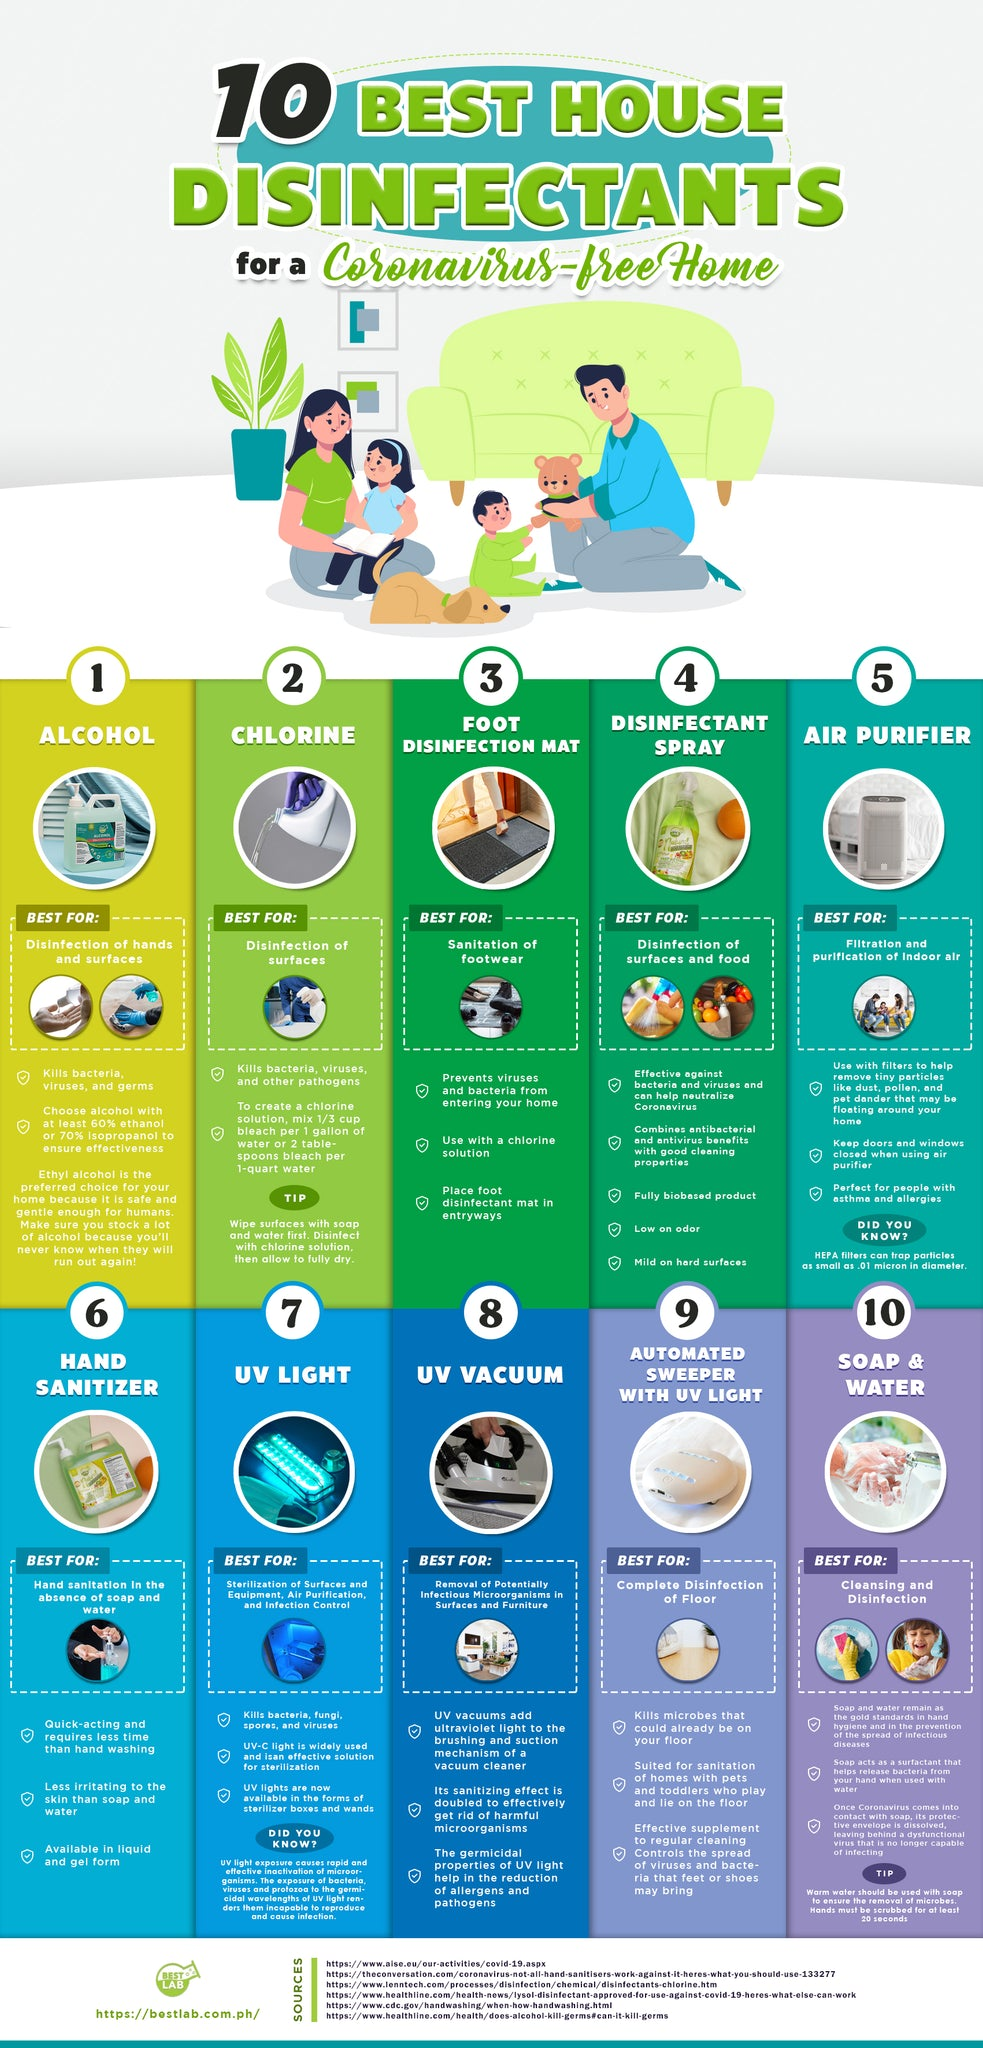 10 Best House Disinfectants for a Coronavirus-Free Home